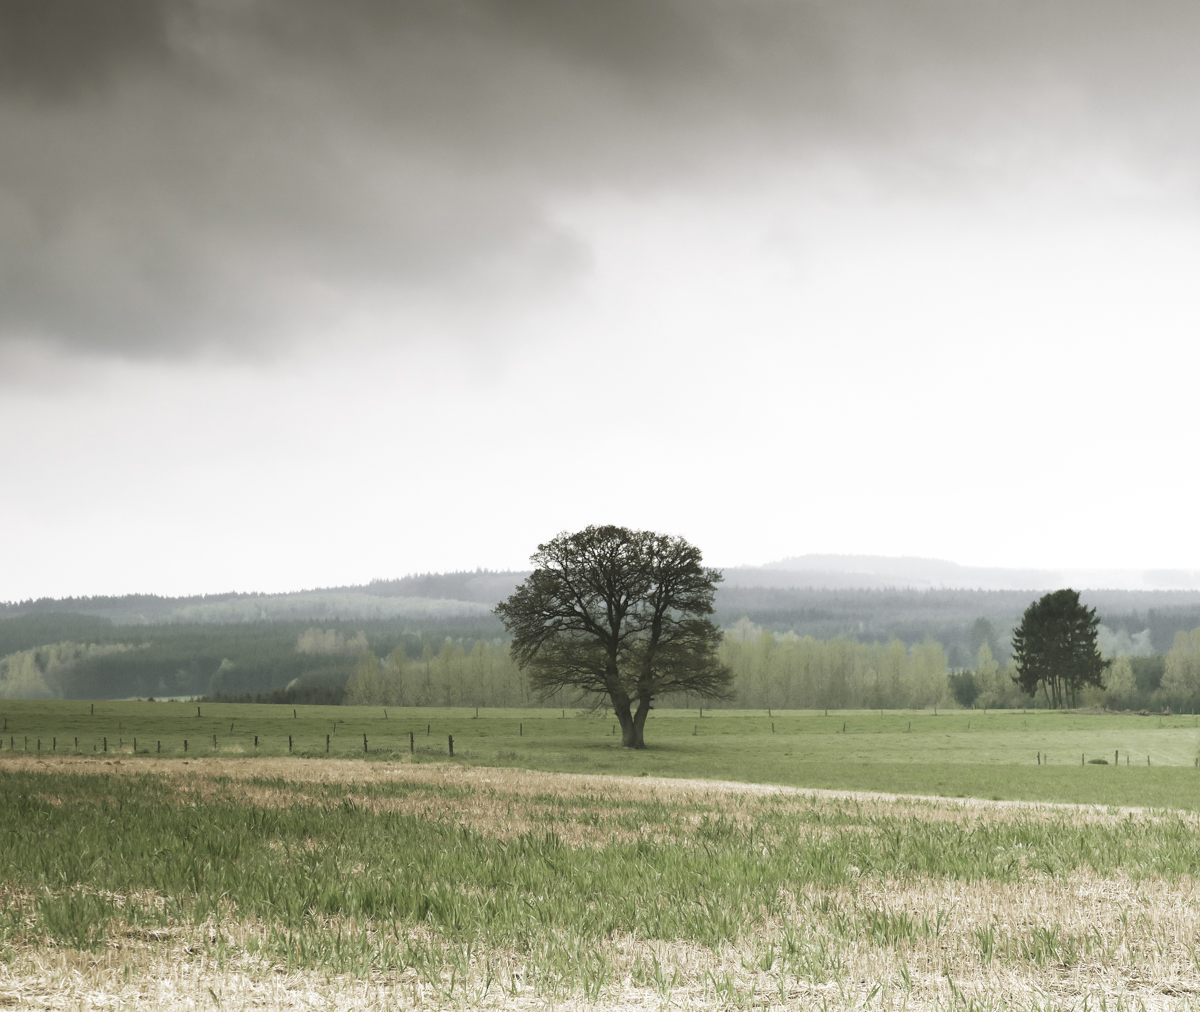 The open farmland with peaceful lonely trees on the hillside.